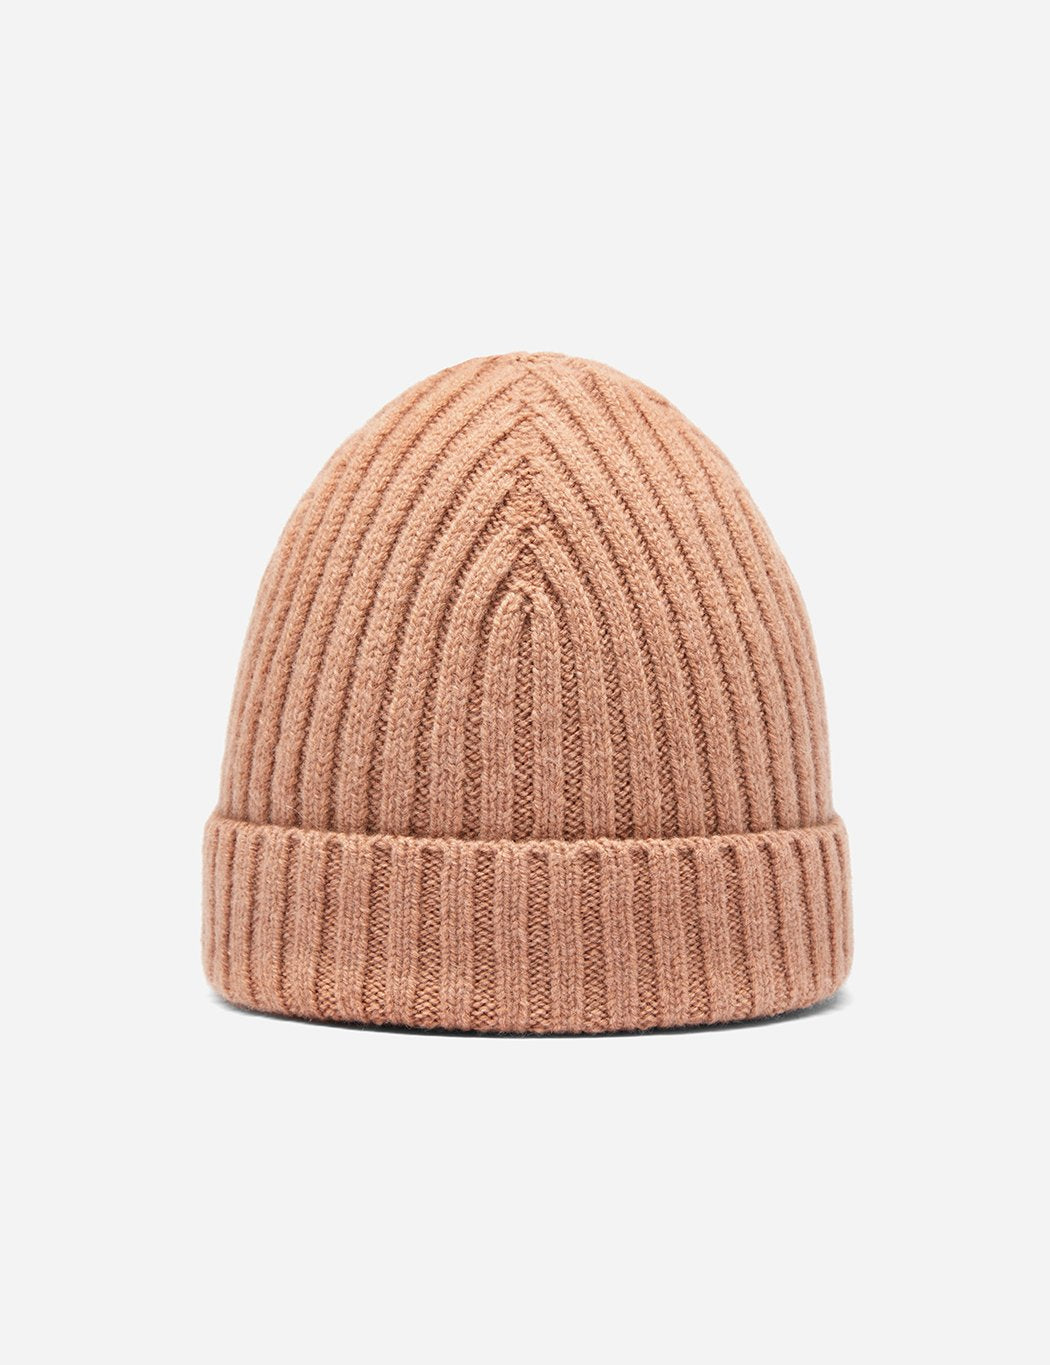 Bhode Rib Beanie Hat (Lambswool) - Camel | URBAN EXCESS,